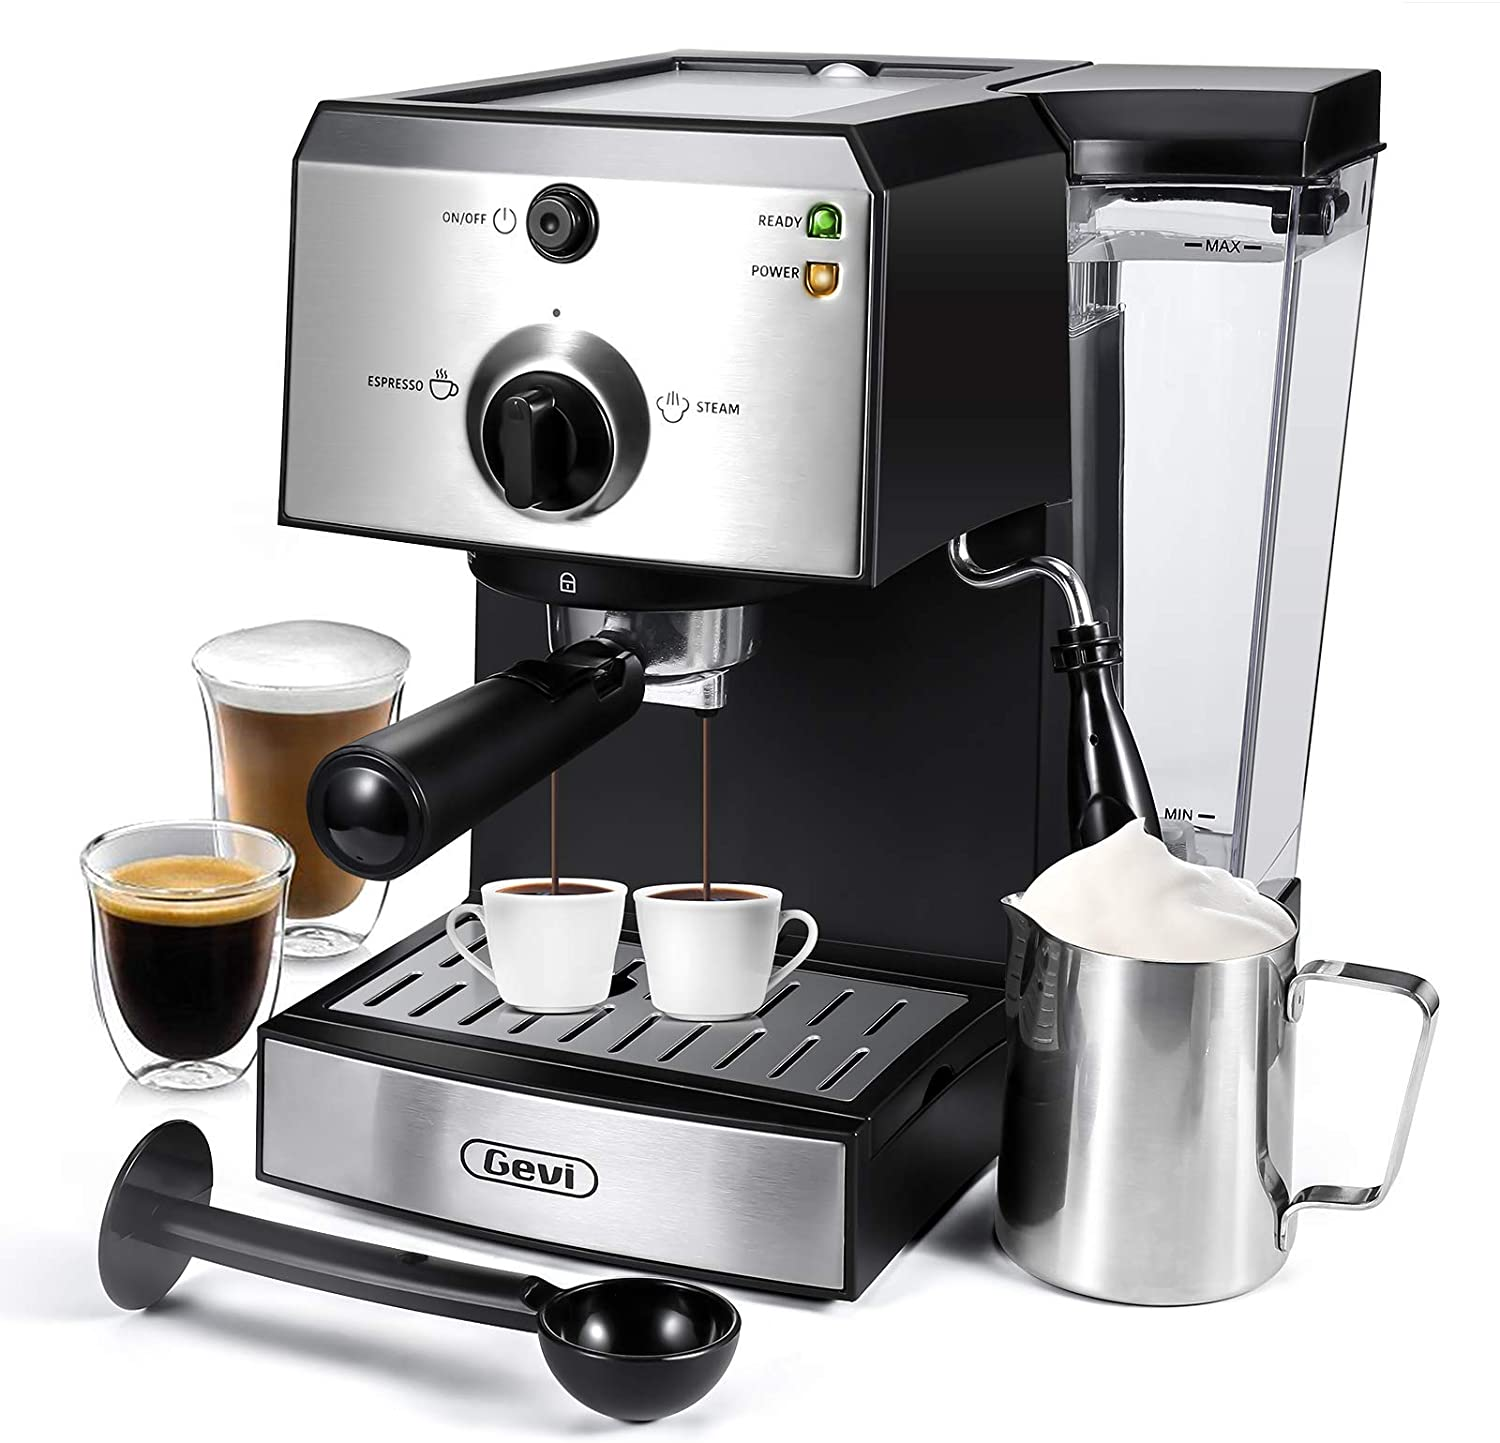 Coffee Maker with Foaming Milk